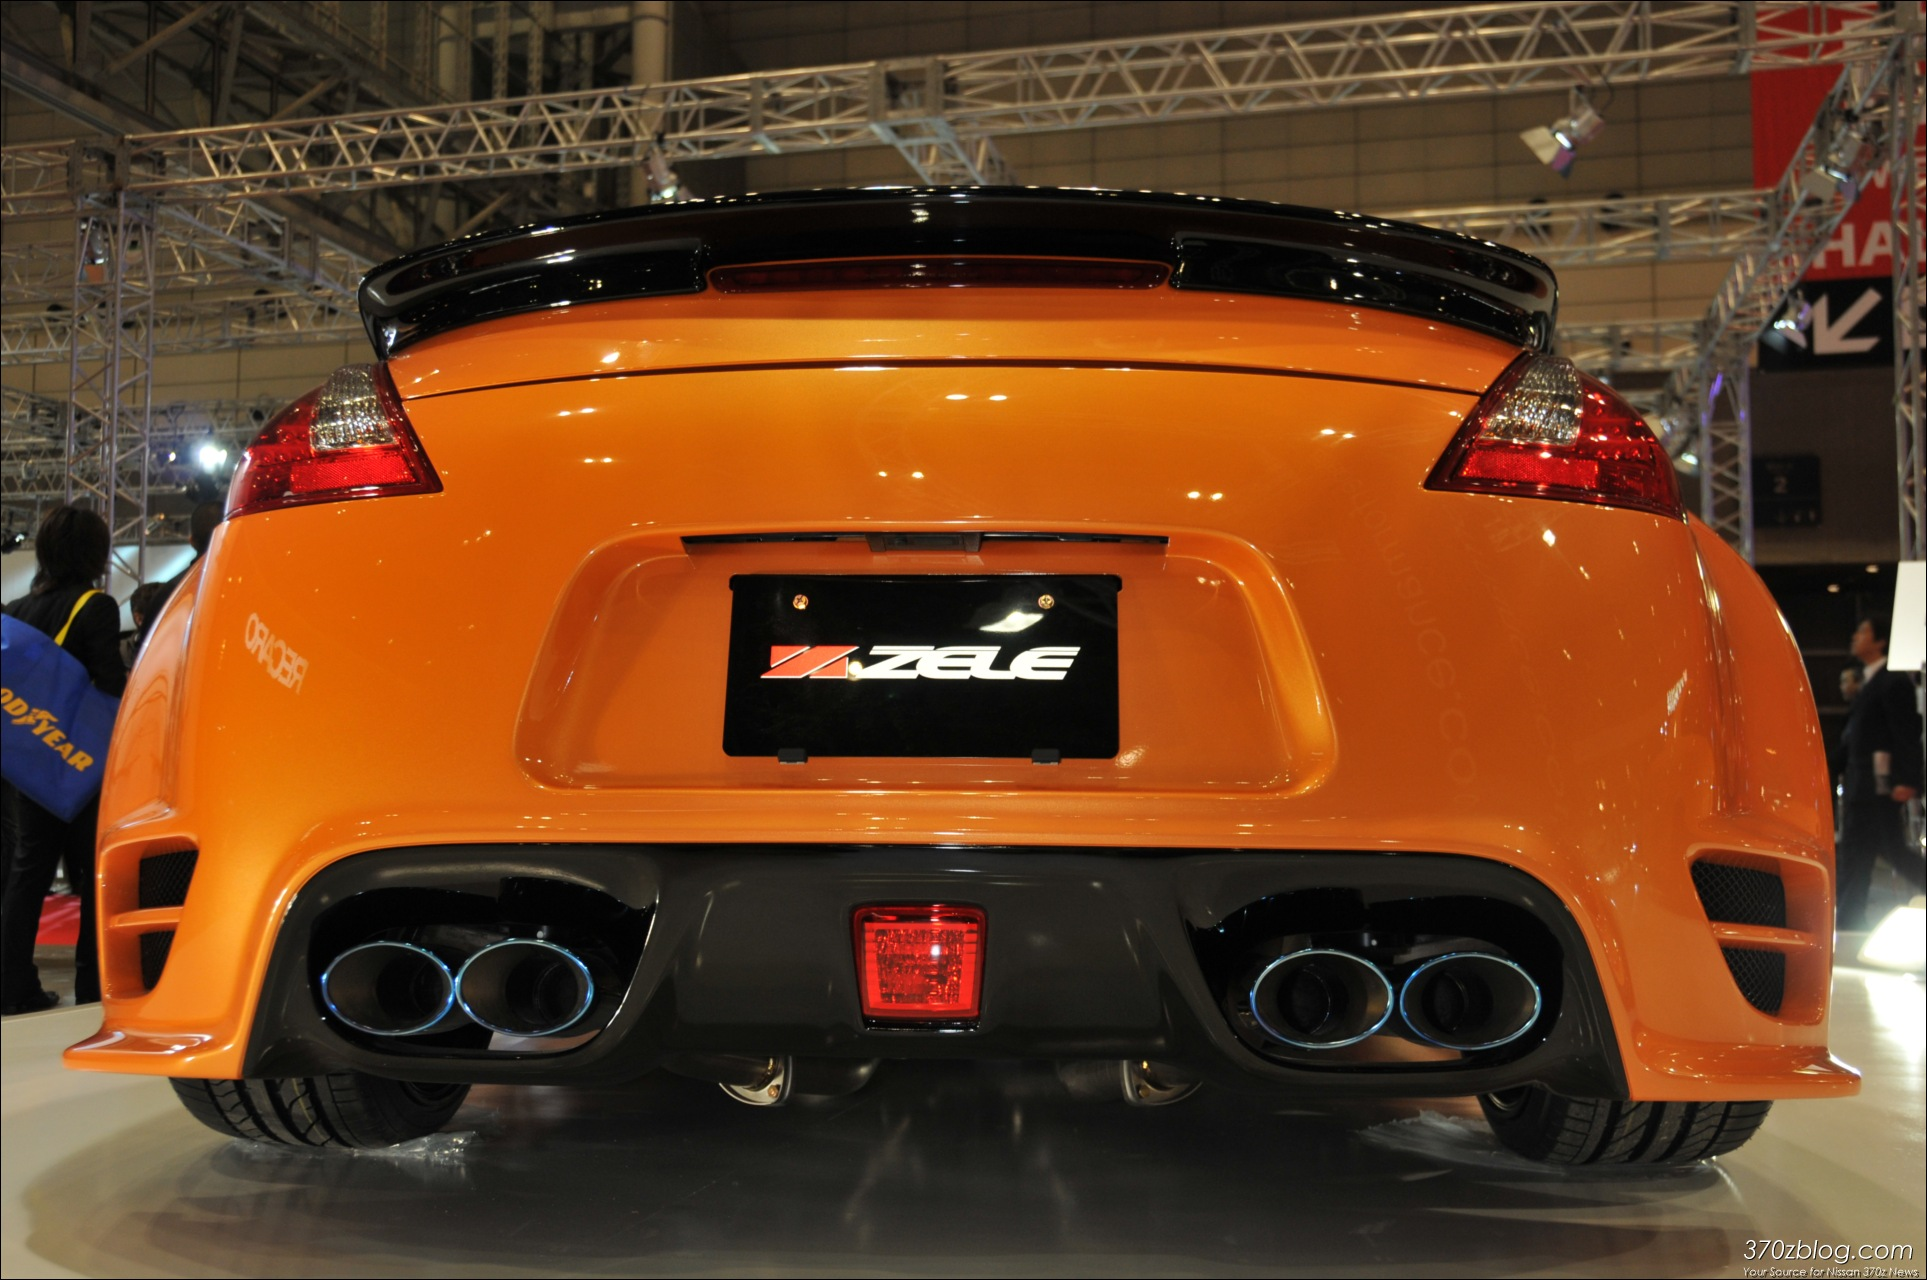 Nissan Of Chattanooga >> Zele kit and exhaust questions - Nissan 370Z Forum